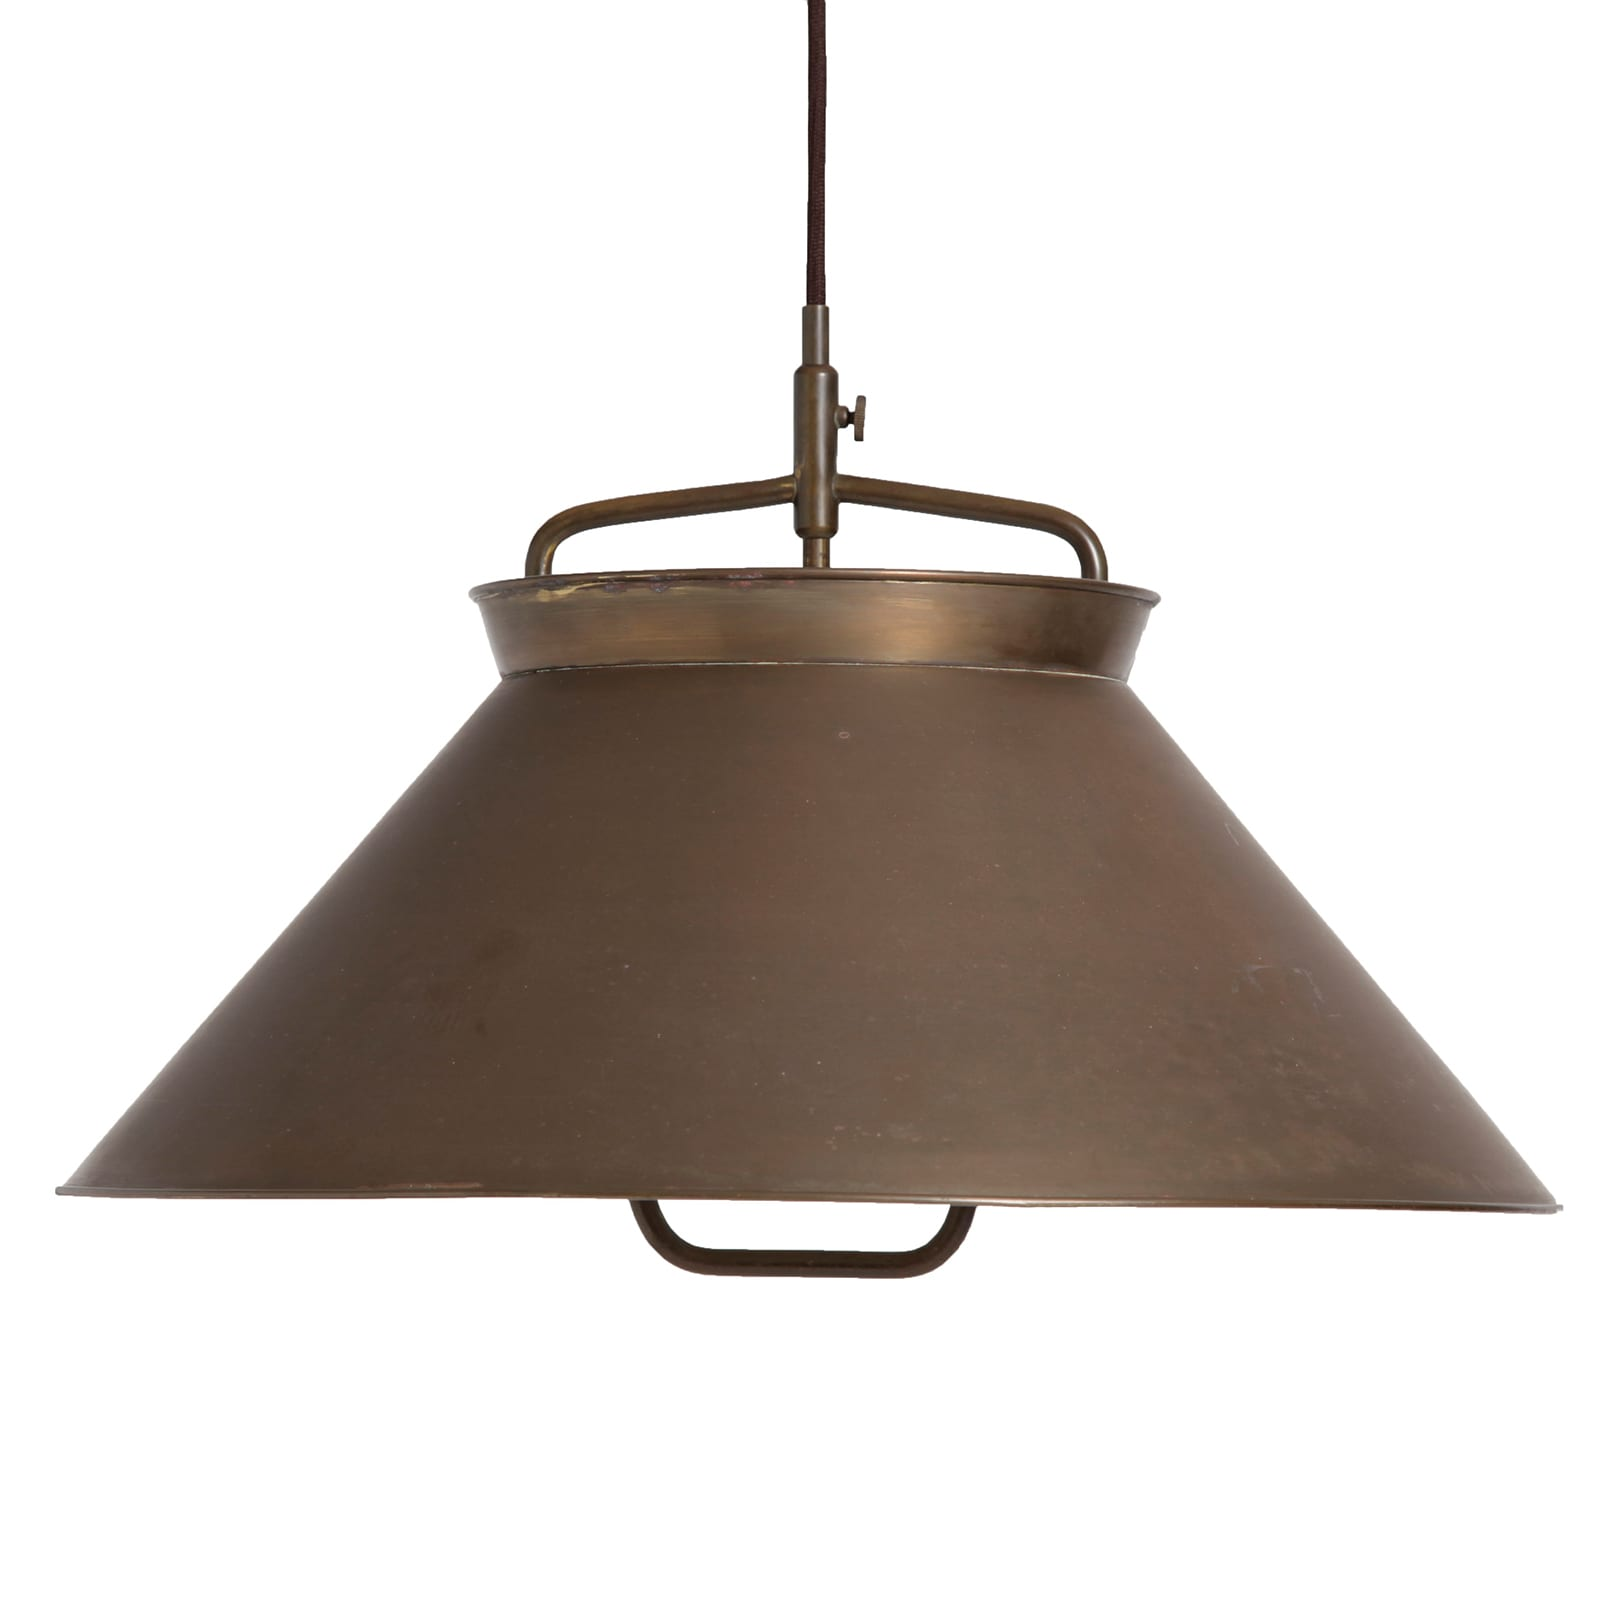 A height adjustable pendant